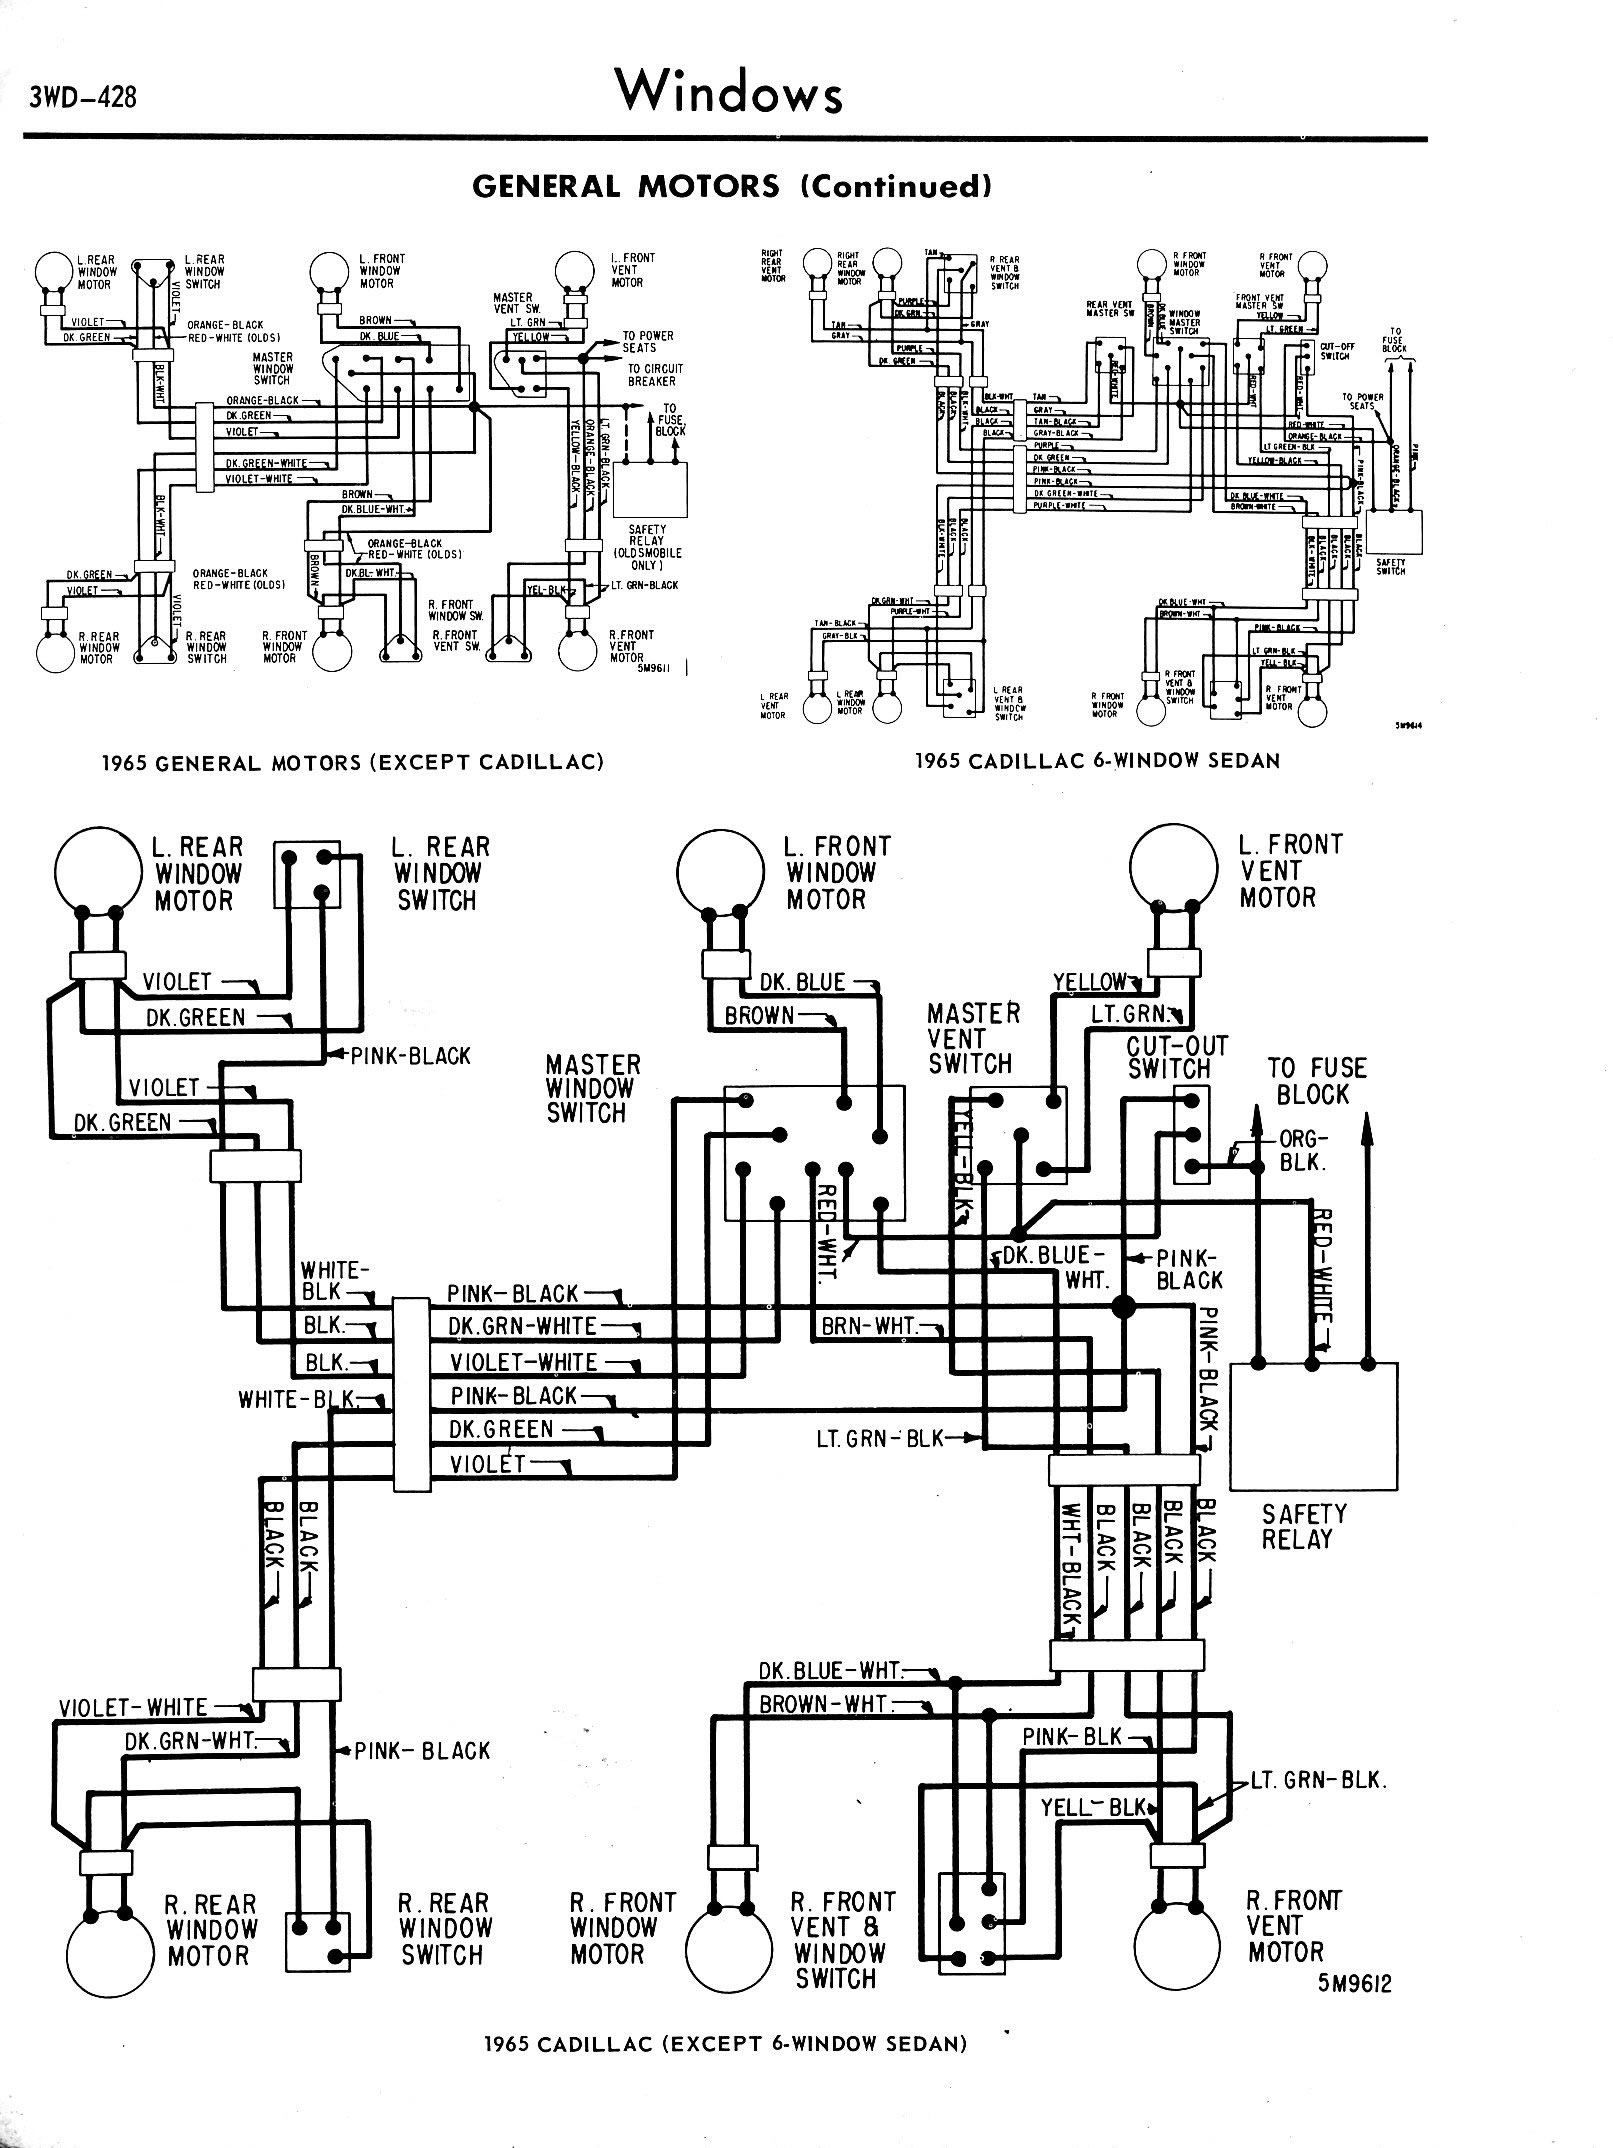 Chevy Diagrams 65 Malibu Engine Wiring Diagram Power Windows Gm Including The 6 Window Cadillac